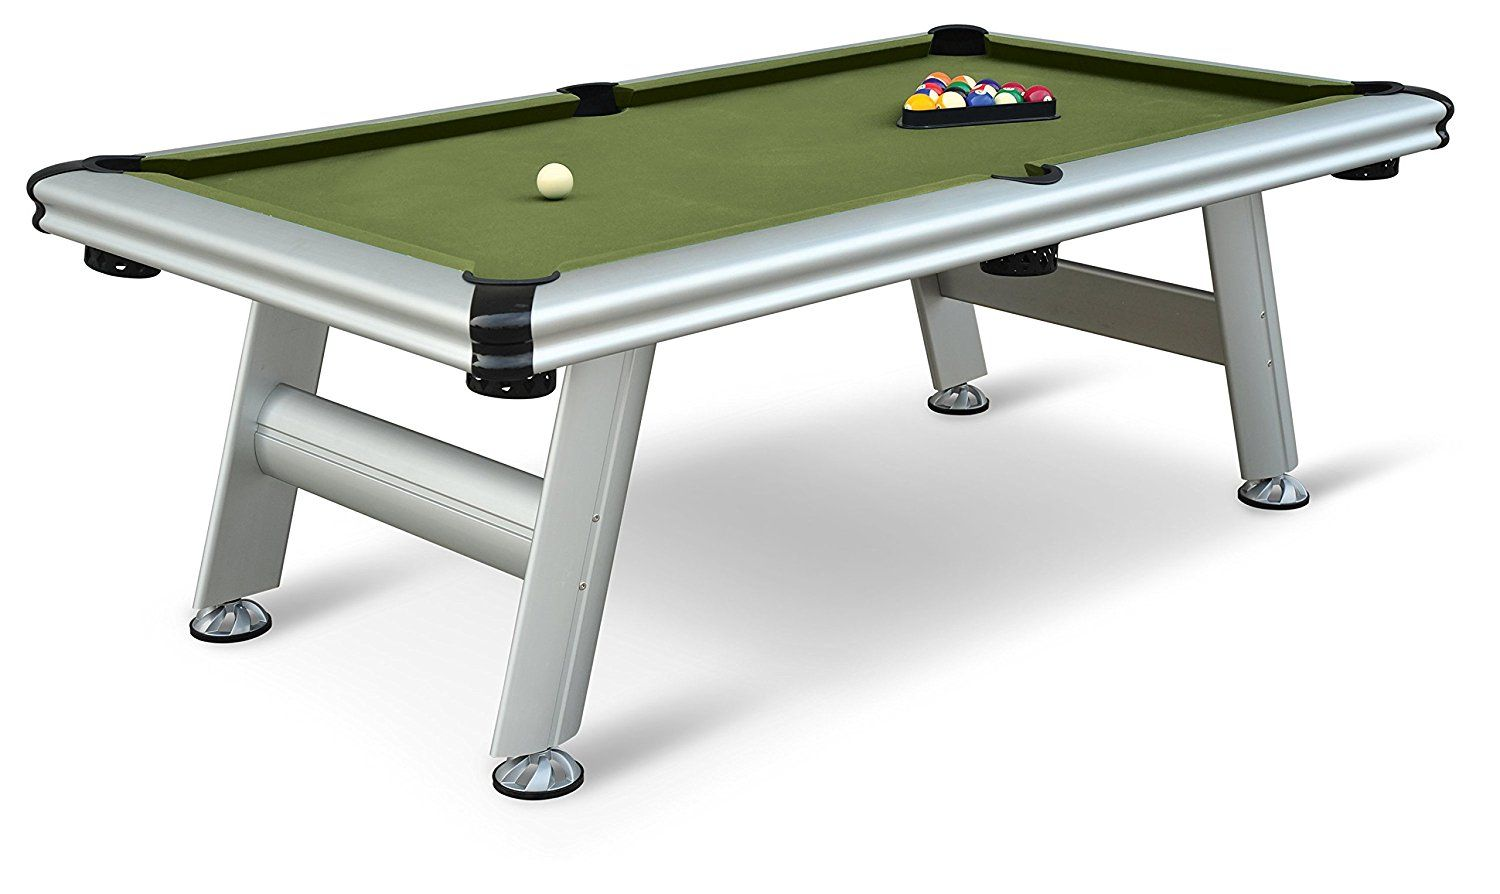 Beautiful Best Outdoor Pool Tables 2017 Review #best #kids #Miniature  #Outdoor #Patio #Terrace Outdoor Pool Tables Are Amazing, We Do Not Always  Have The ...